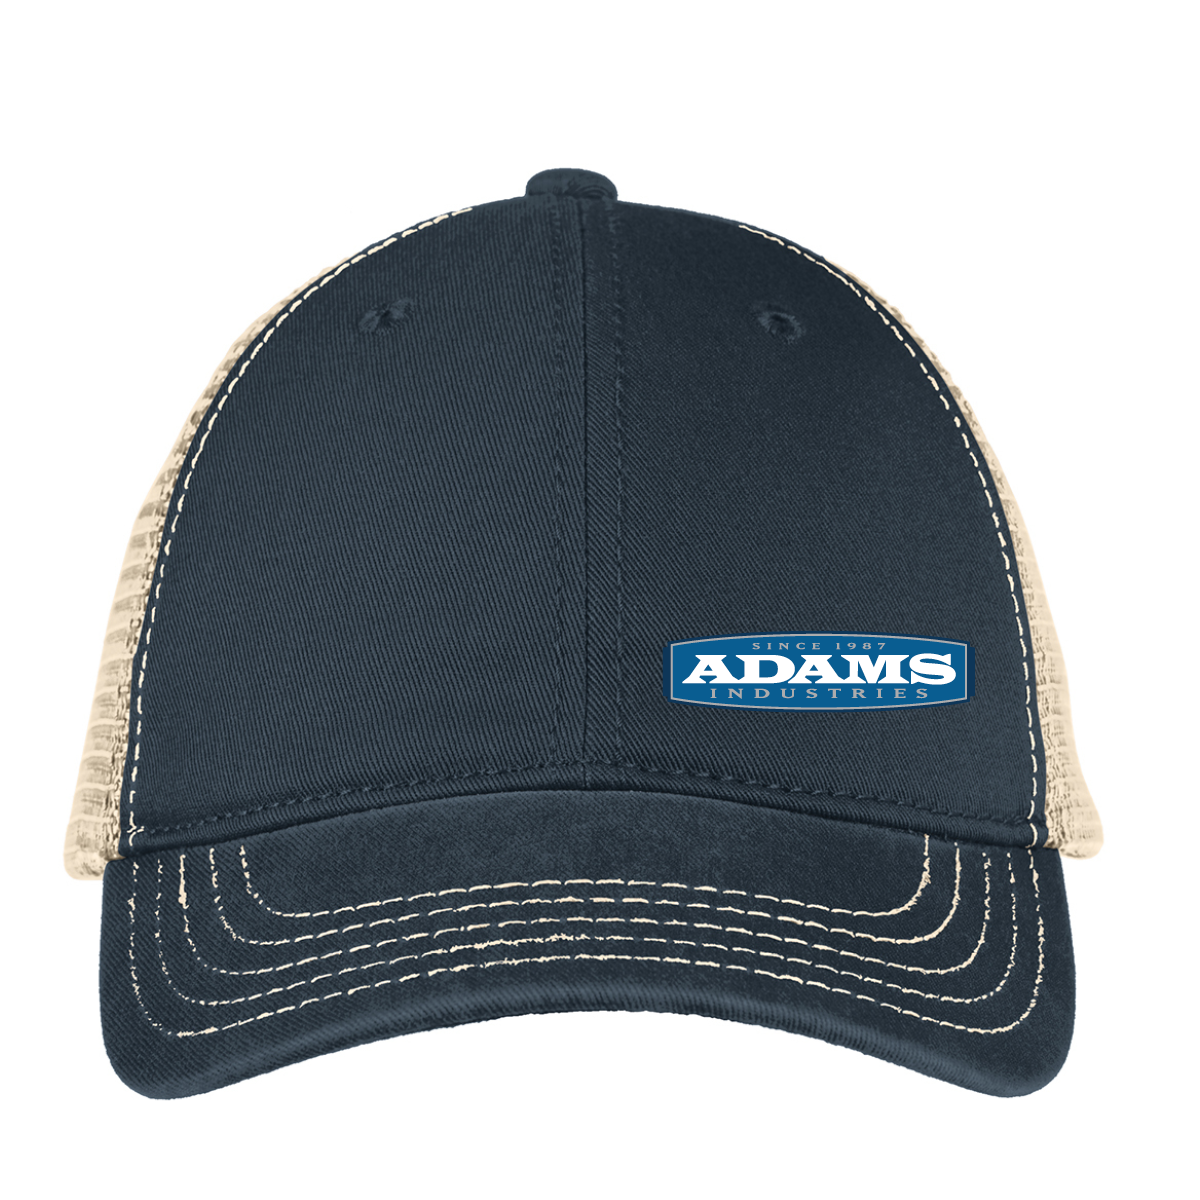 Adams Super Soft Mesh Back Cap